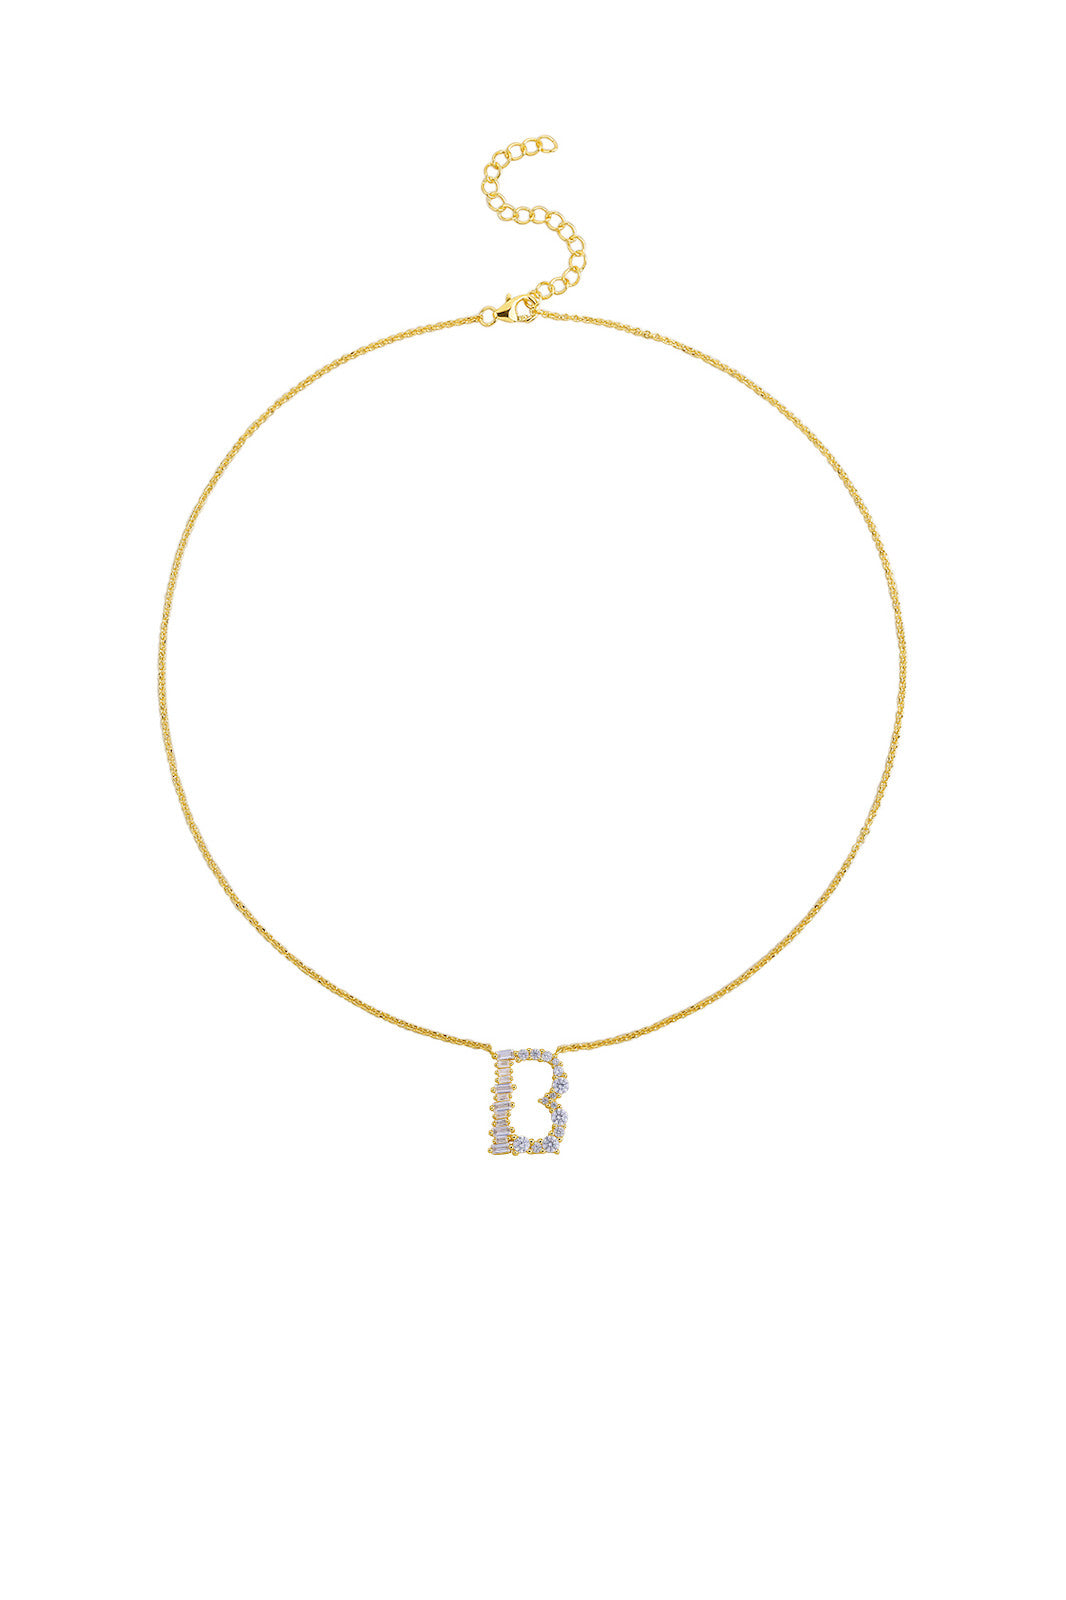 Gold Plated Sterling Silver Initial Necklace - Letter B Detail